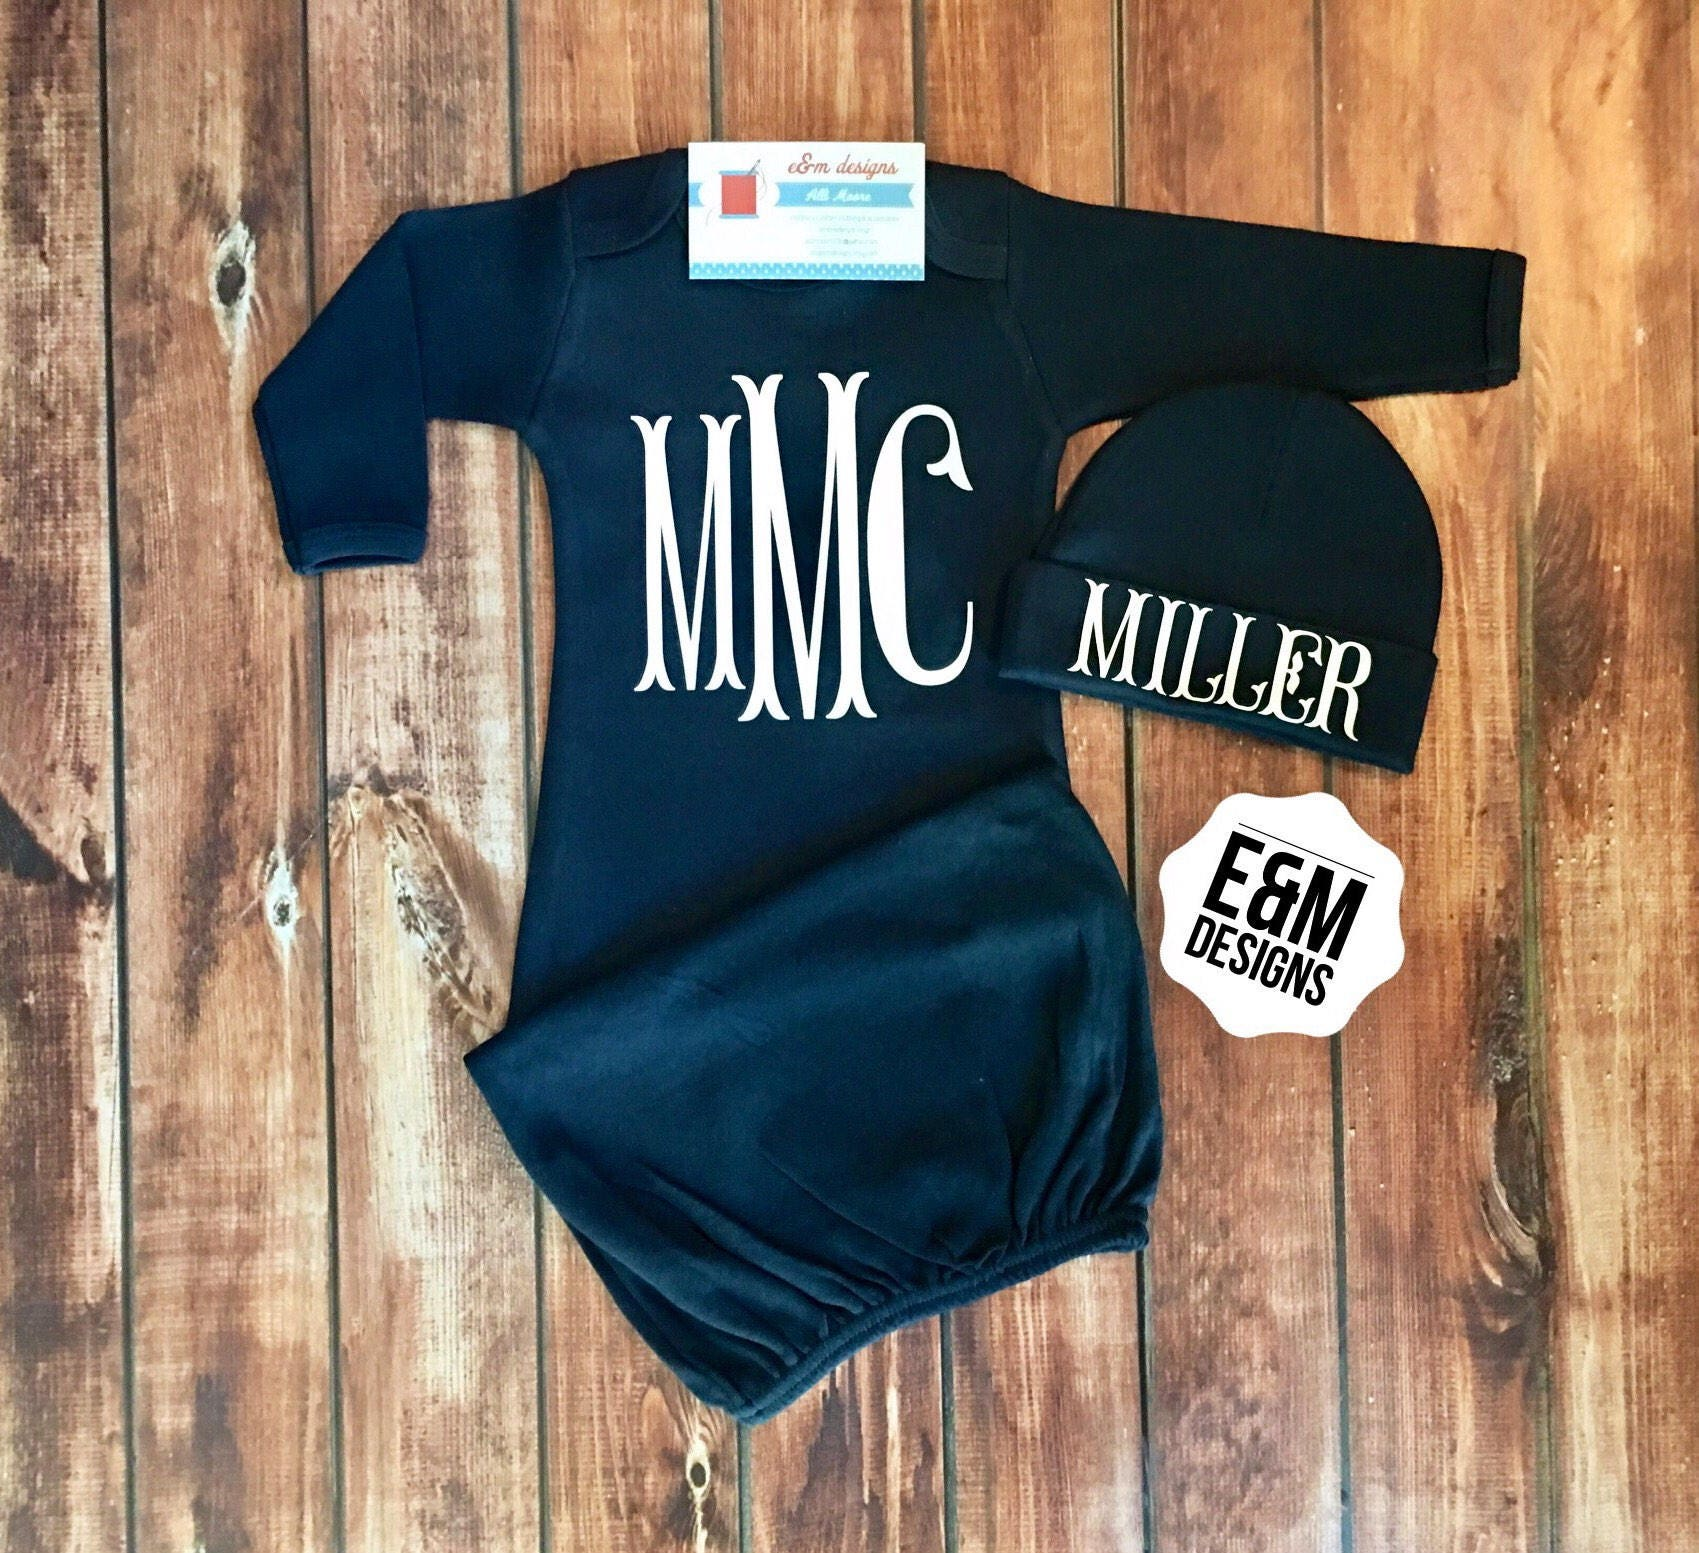 Boy ing Home Outfit Monogrammed Baby Boy Gown Navy Set